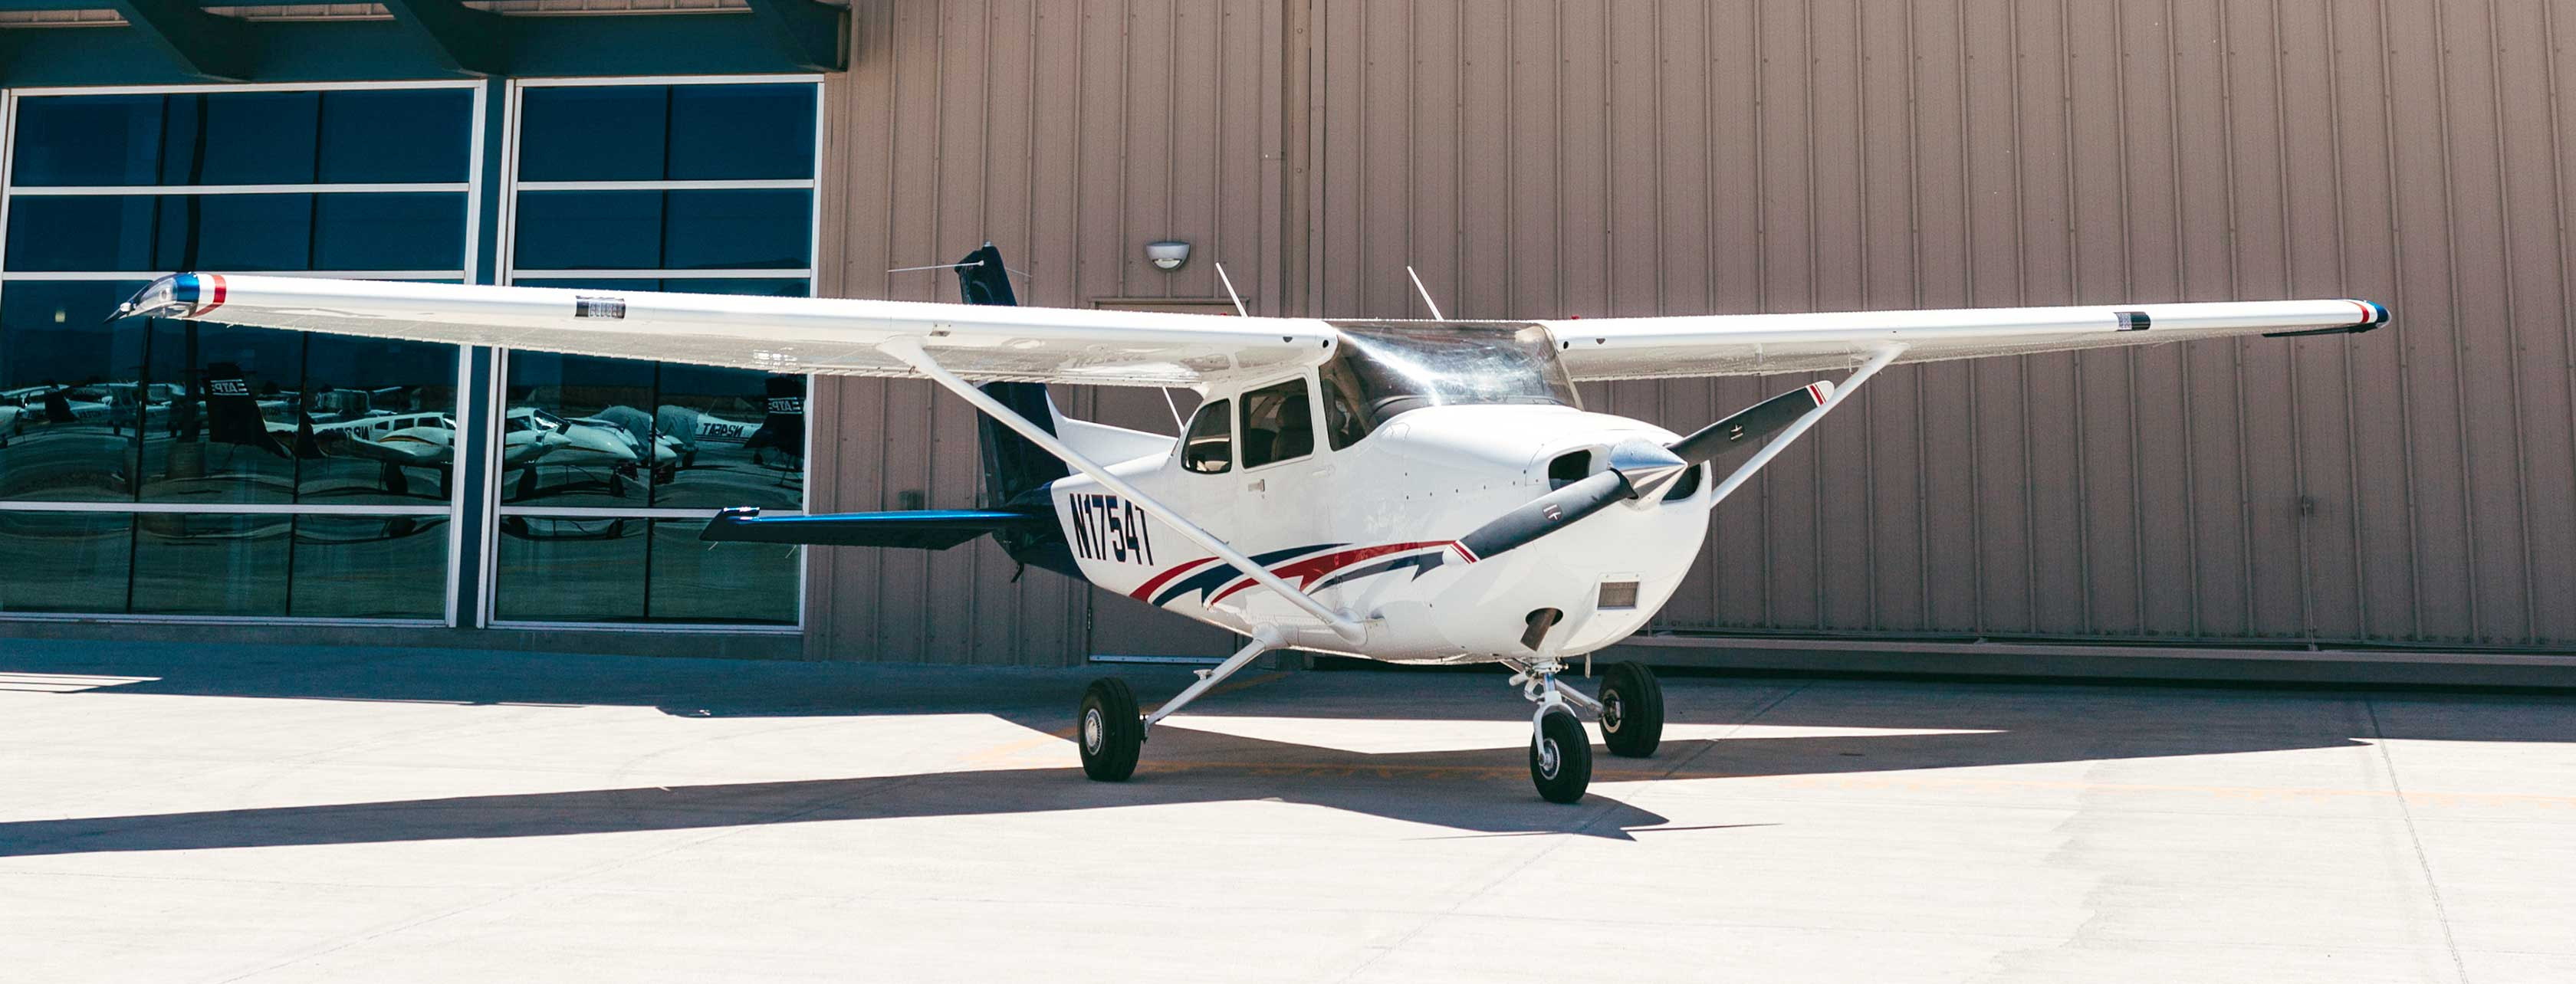 Cessna 172 sitting on the ground